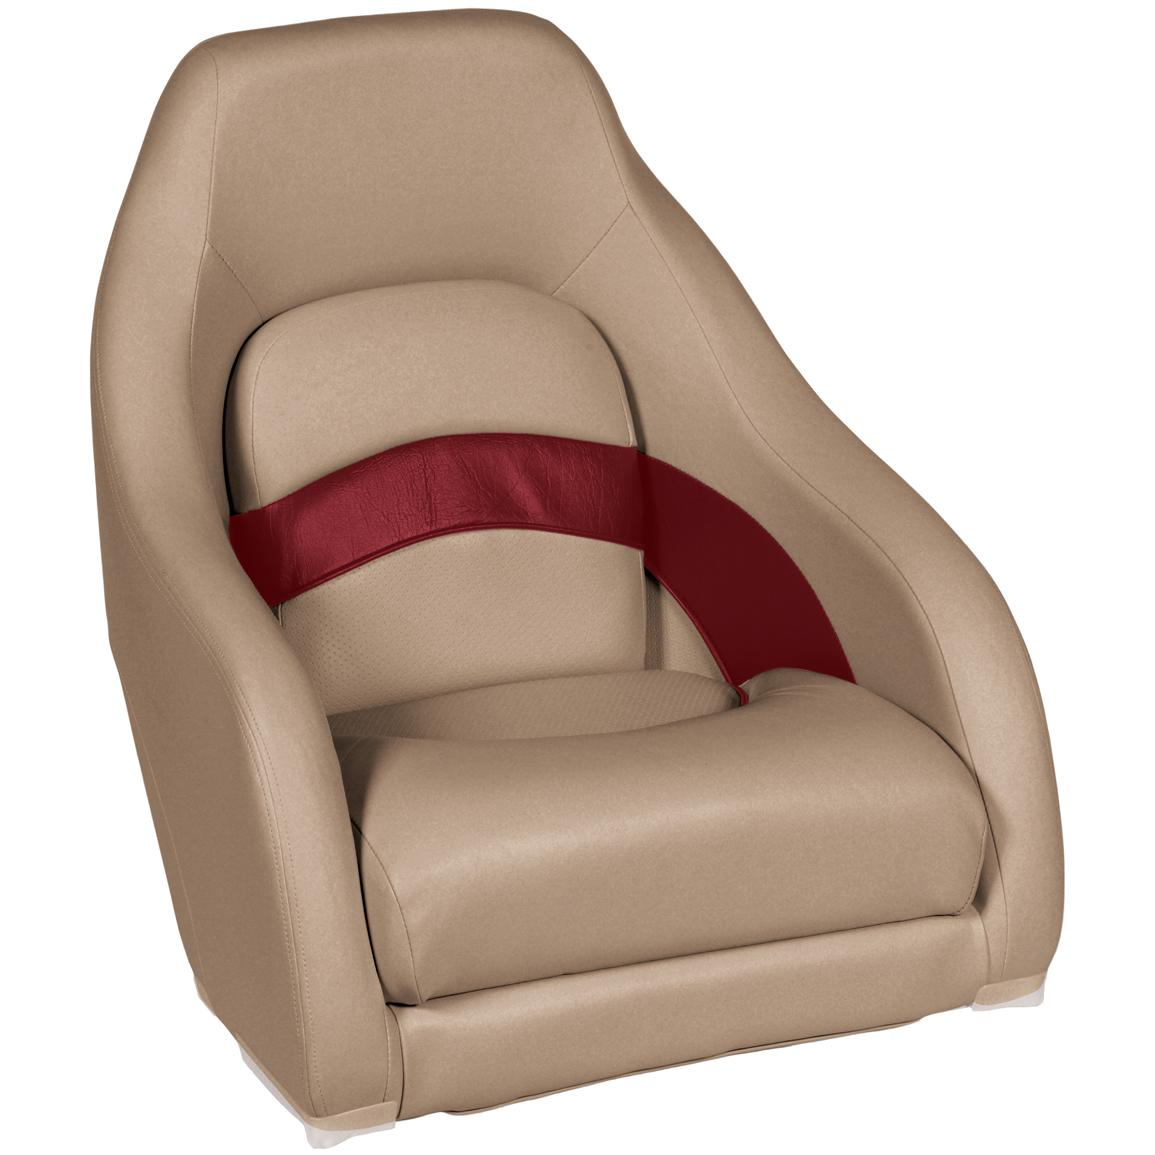 Wise Premier 1100 Series Pontoon Captain's Bucket Seat, Color E: Mocha / Mocha Java Punch / Dark Red / Rock Salt